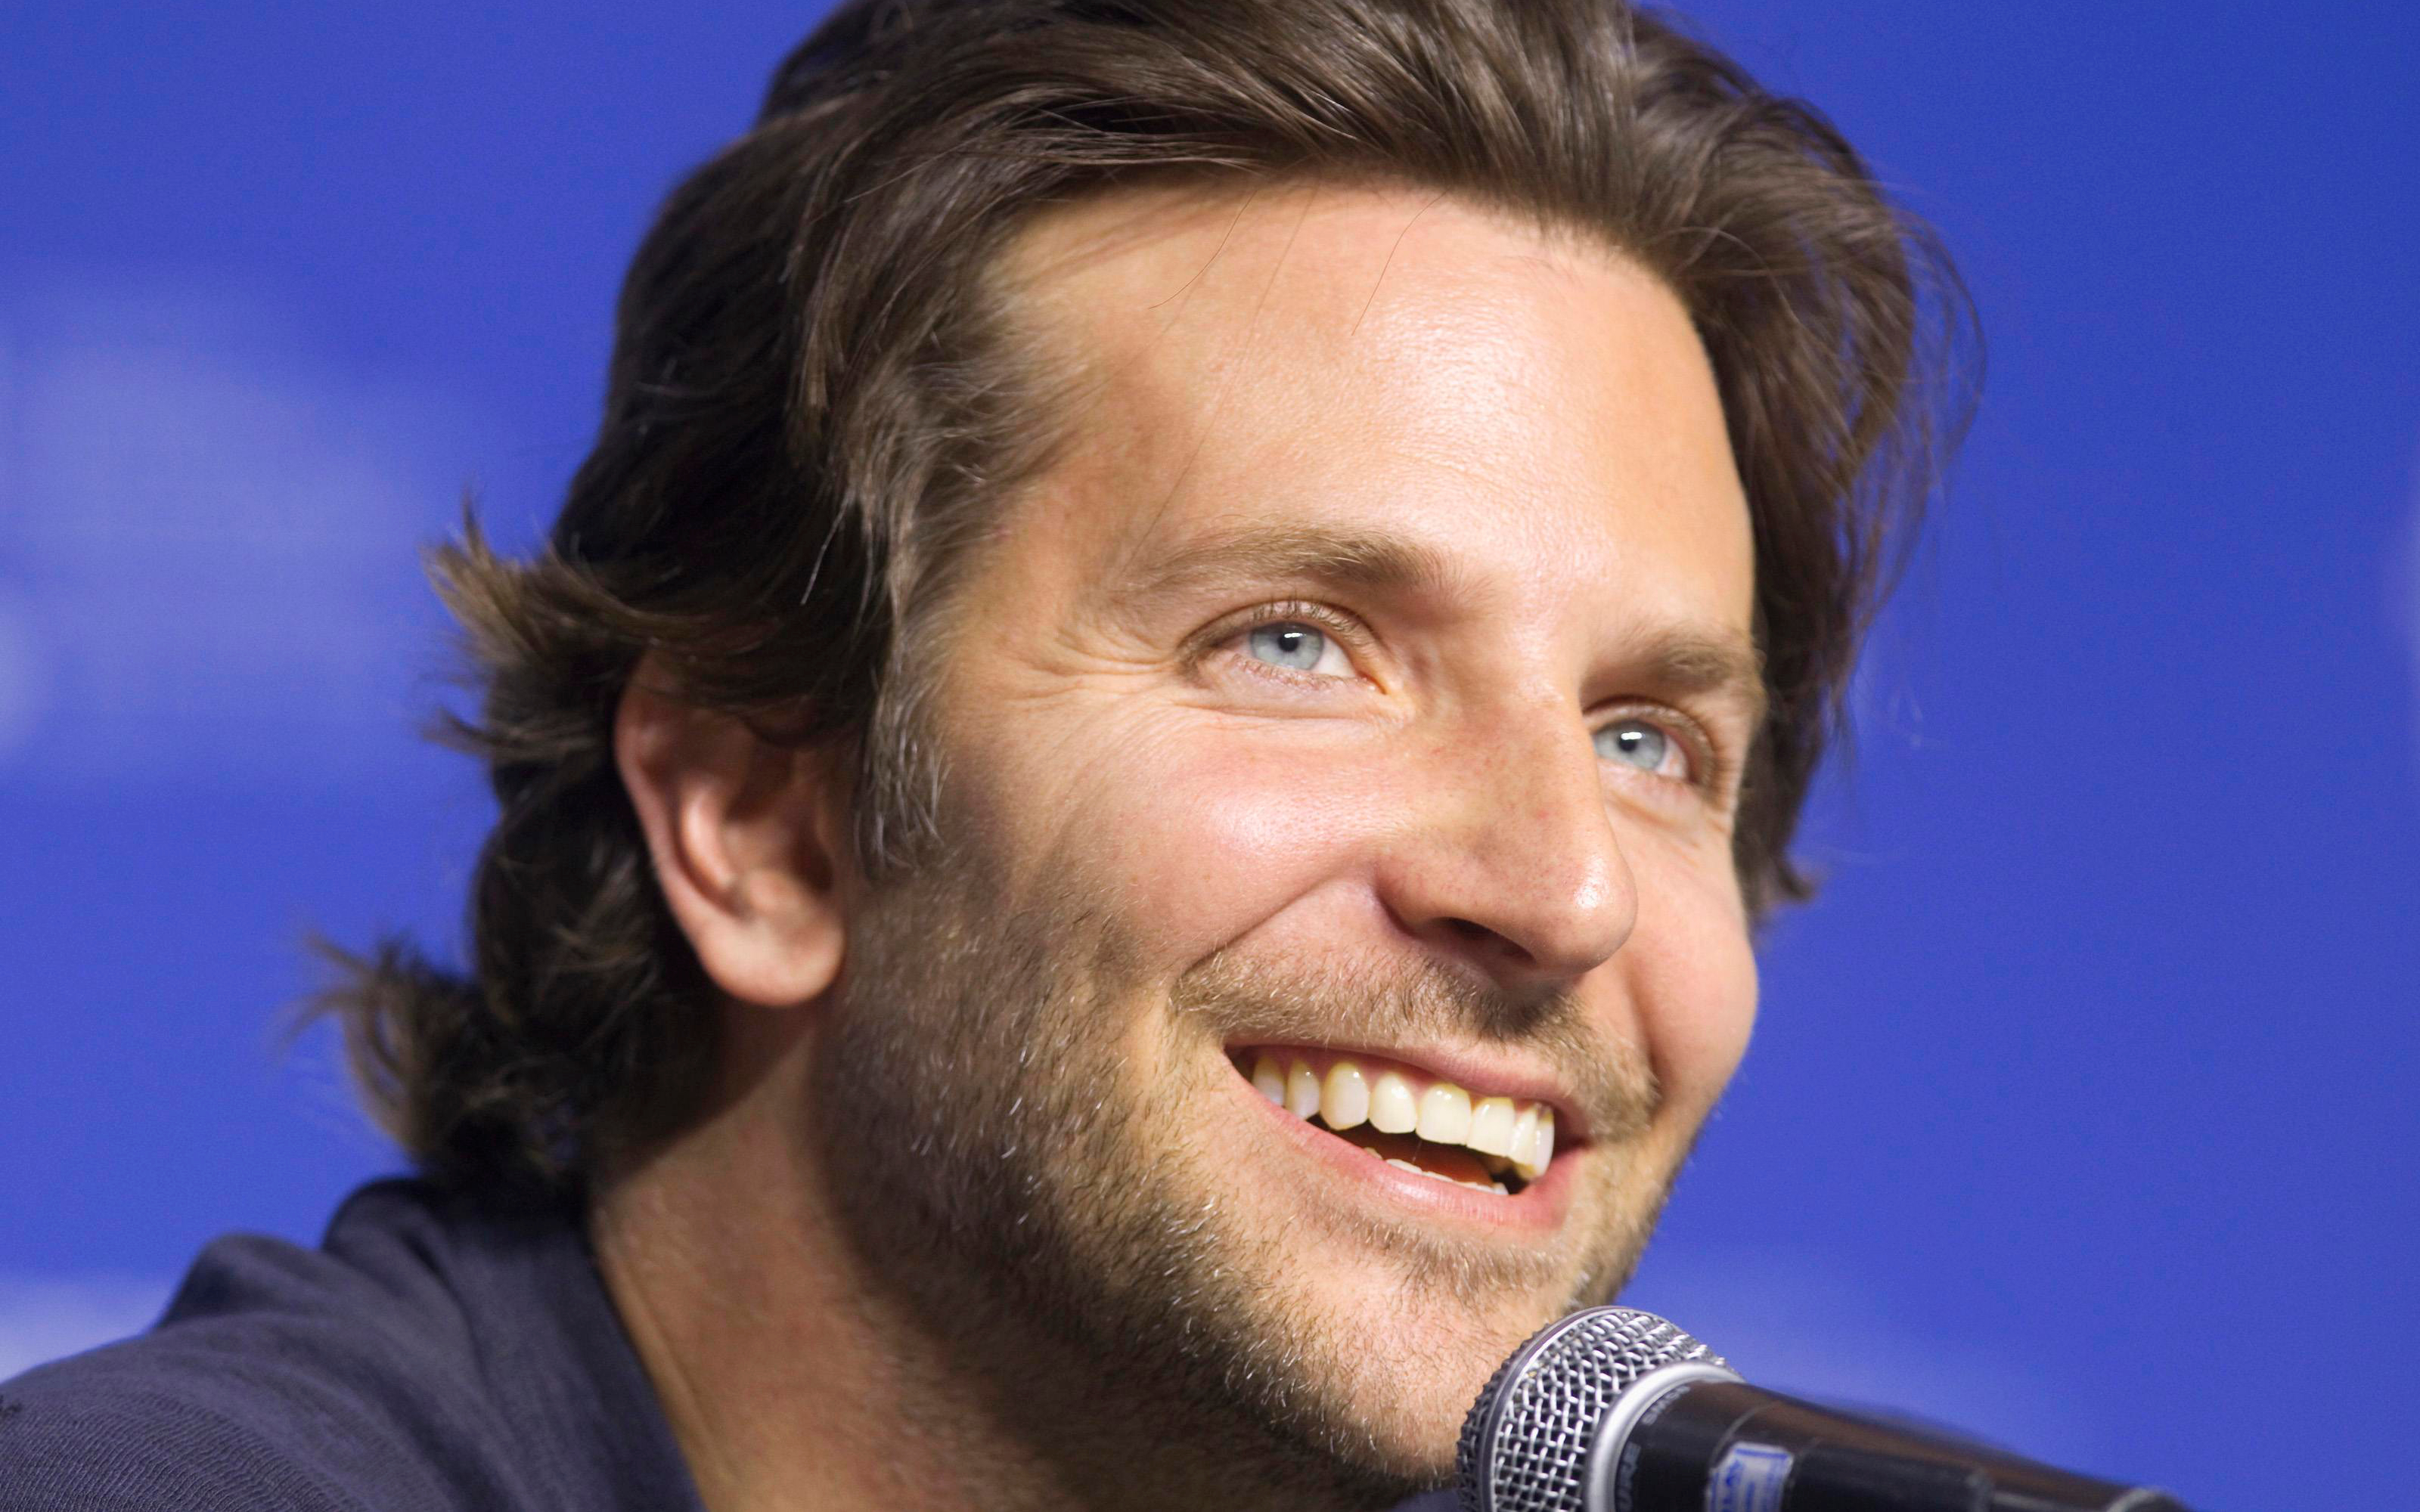 bradley cooper smile widescreen wallpaper 54175